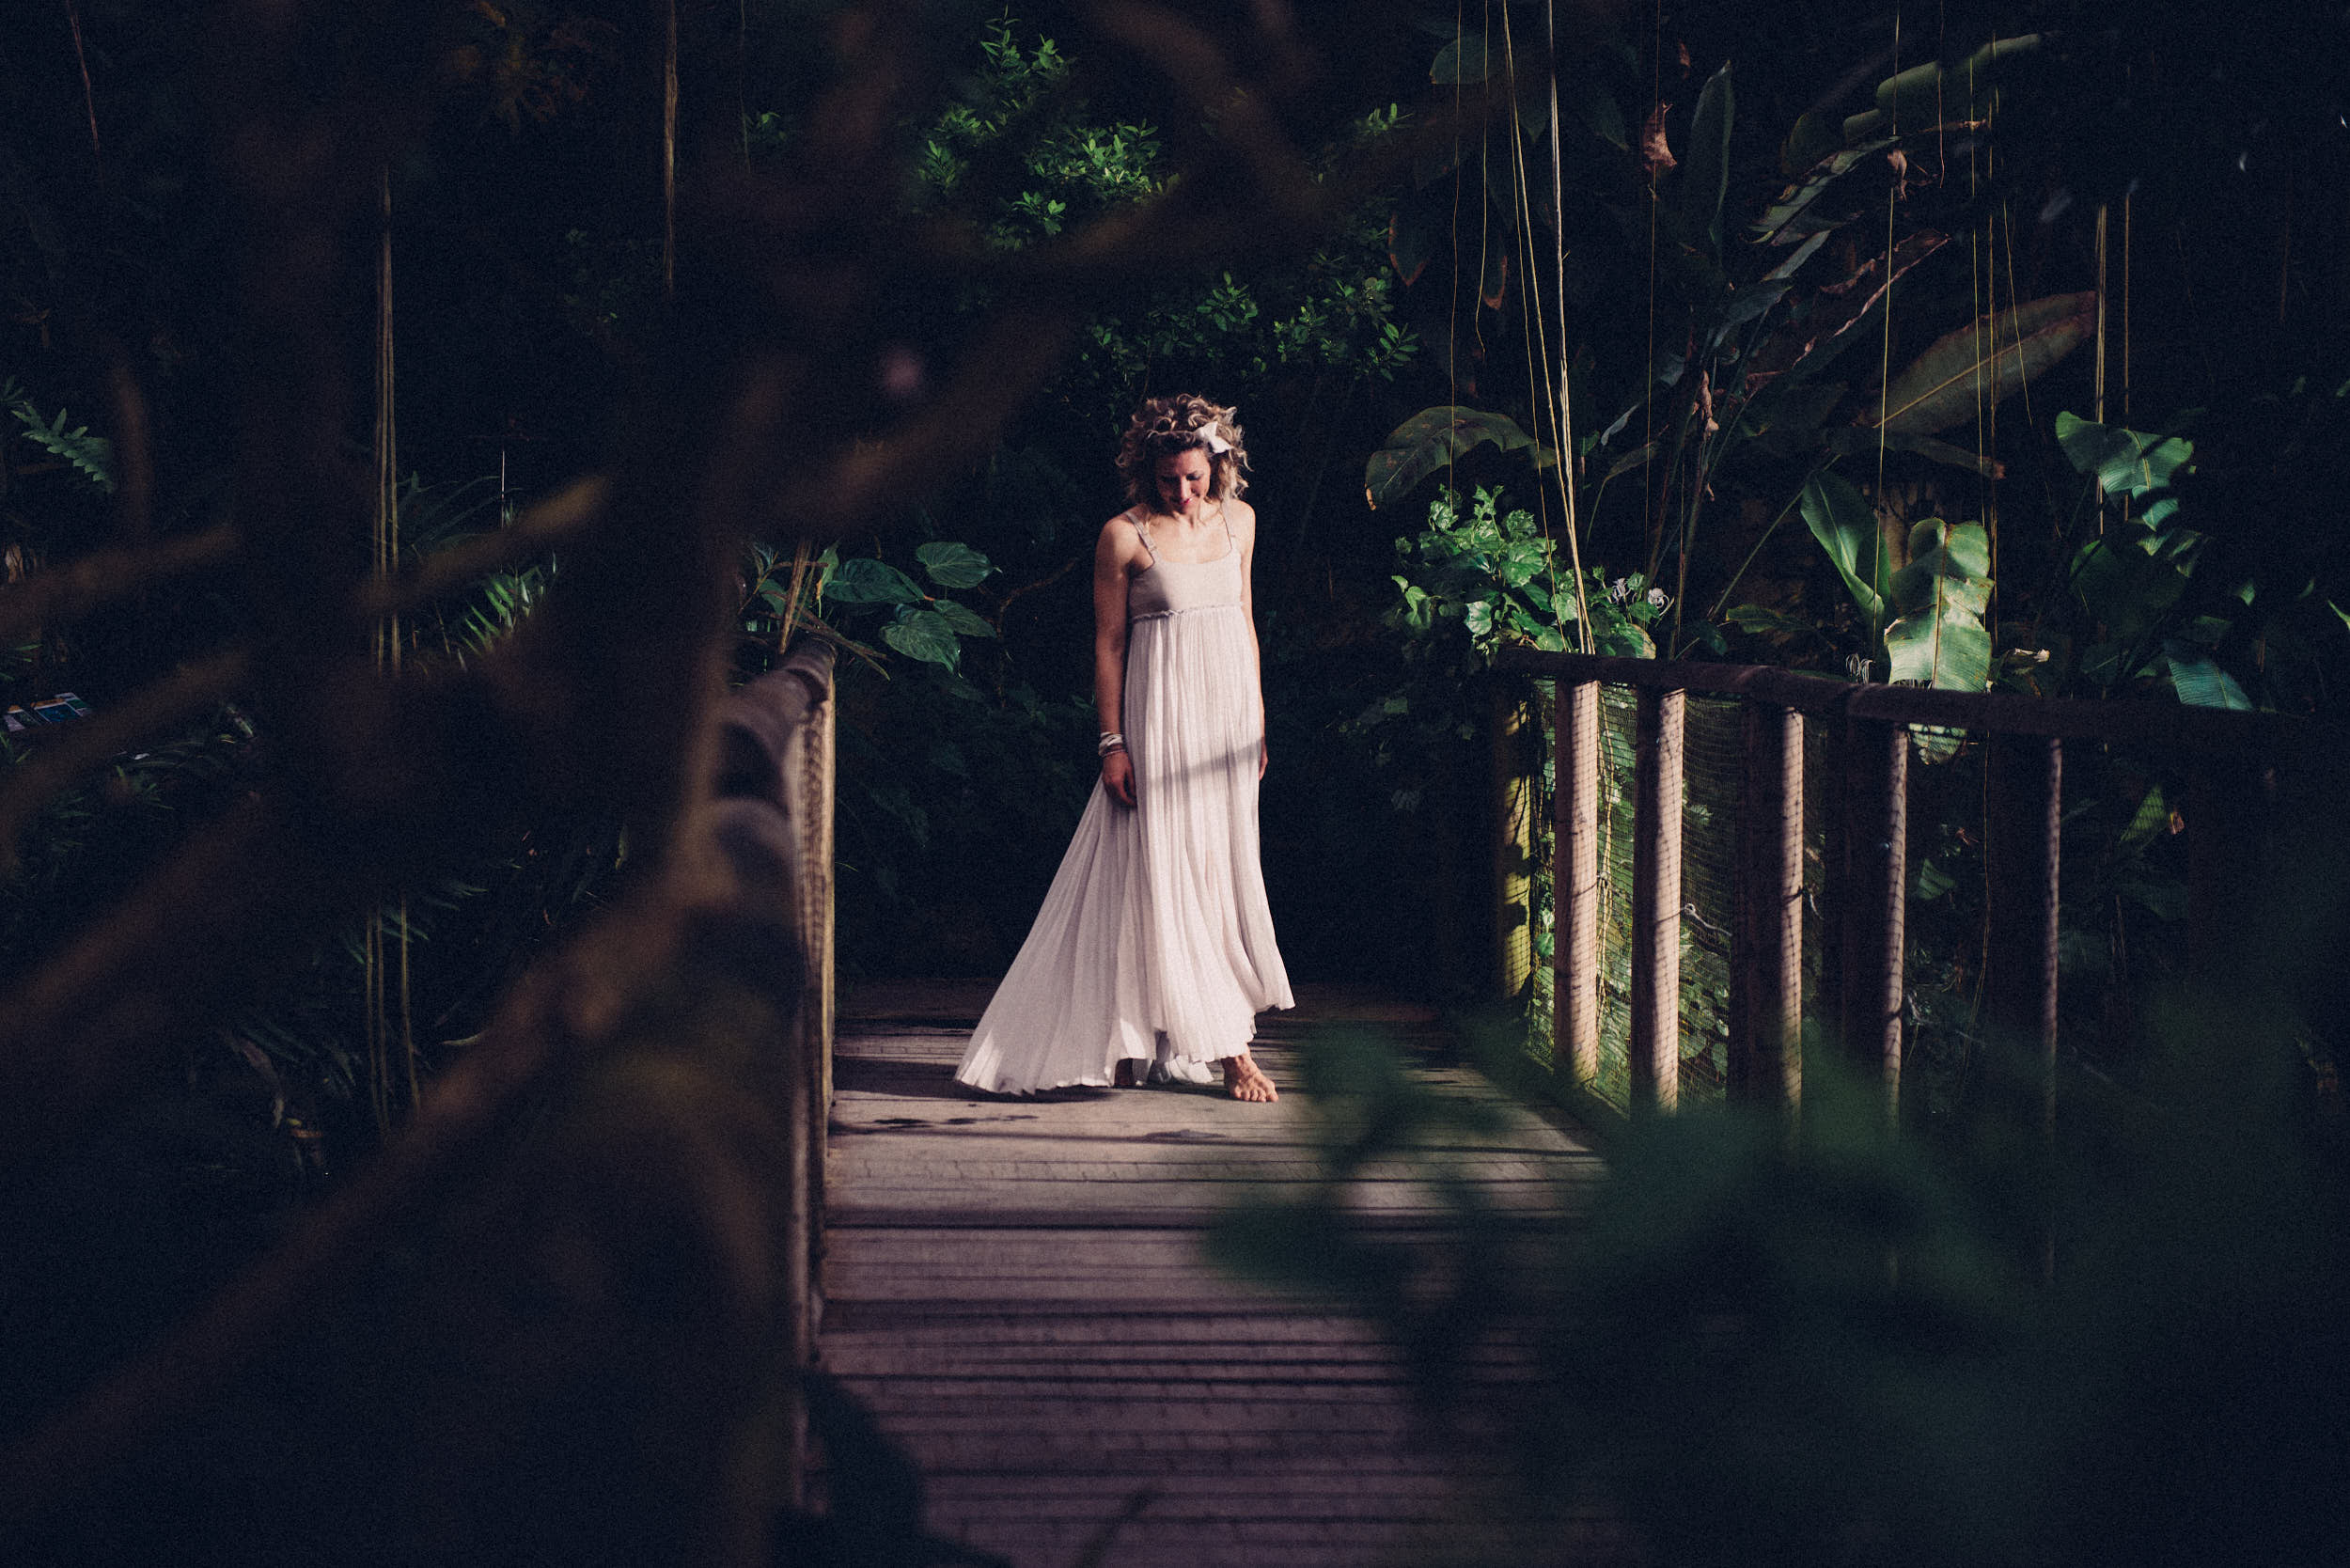 Woman in minimalistic dress walking across a wooden bridge in a jungle-like scene.